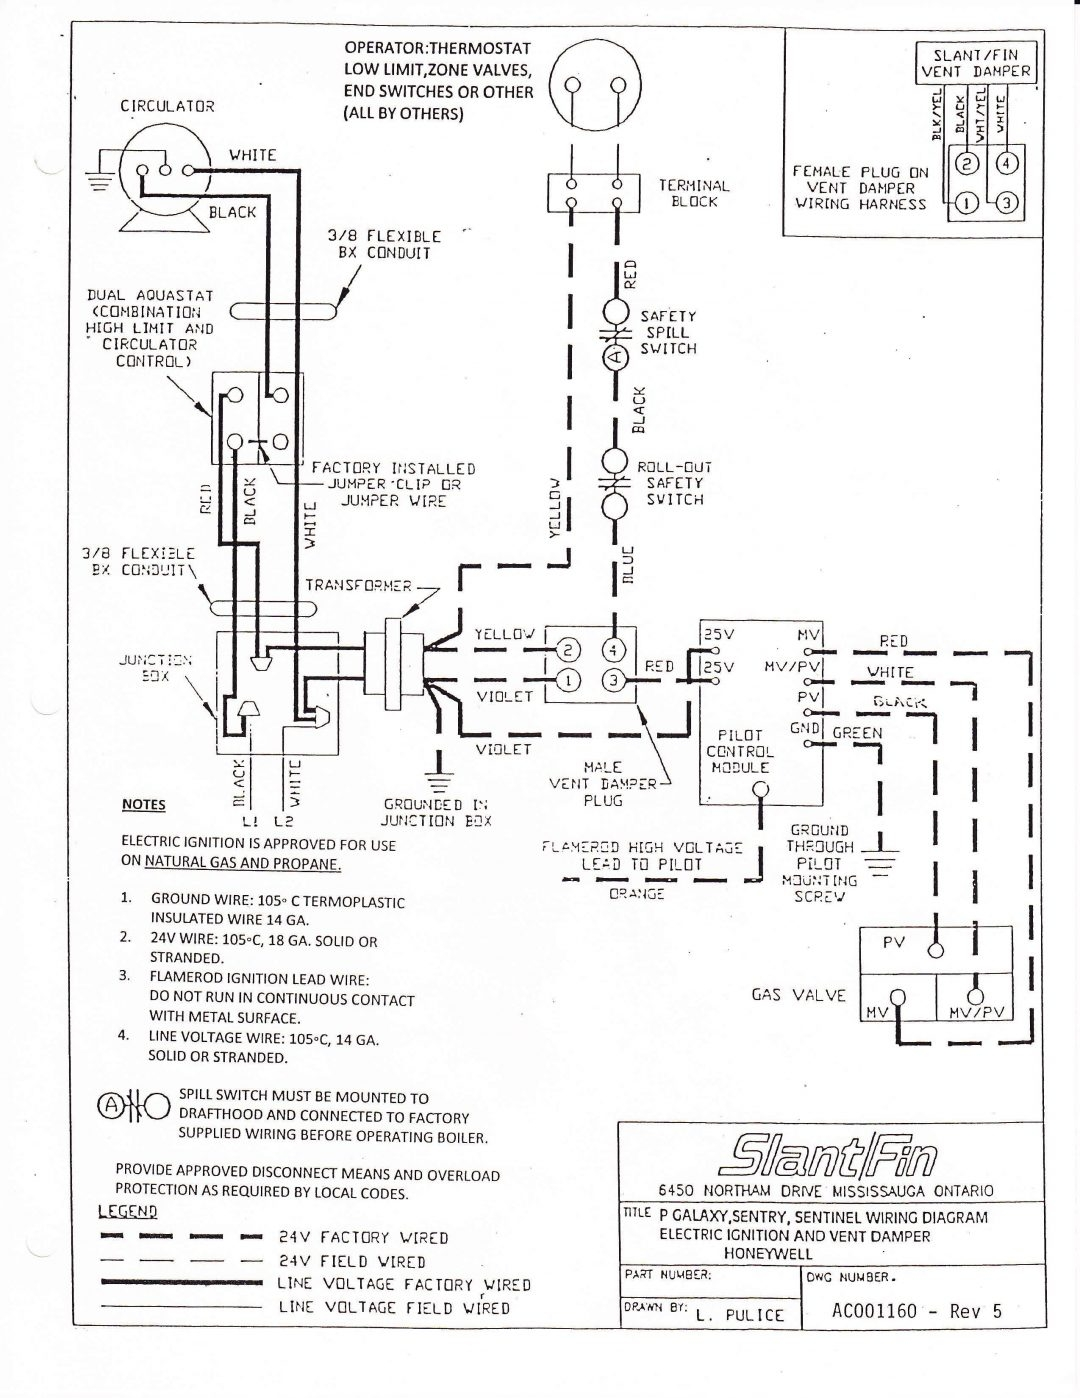 honeywell relay r8222d1014 wiring diagram 5 wires 5 pin relay spotlight wiring diagram honeywell r8184g4009 wiring diagram | free wiring diagram